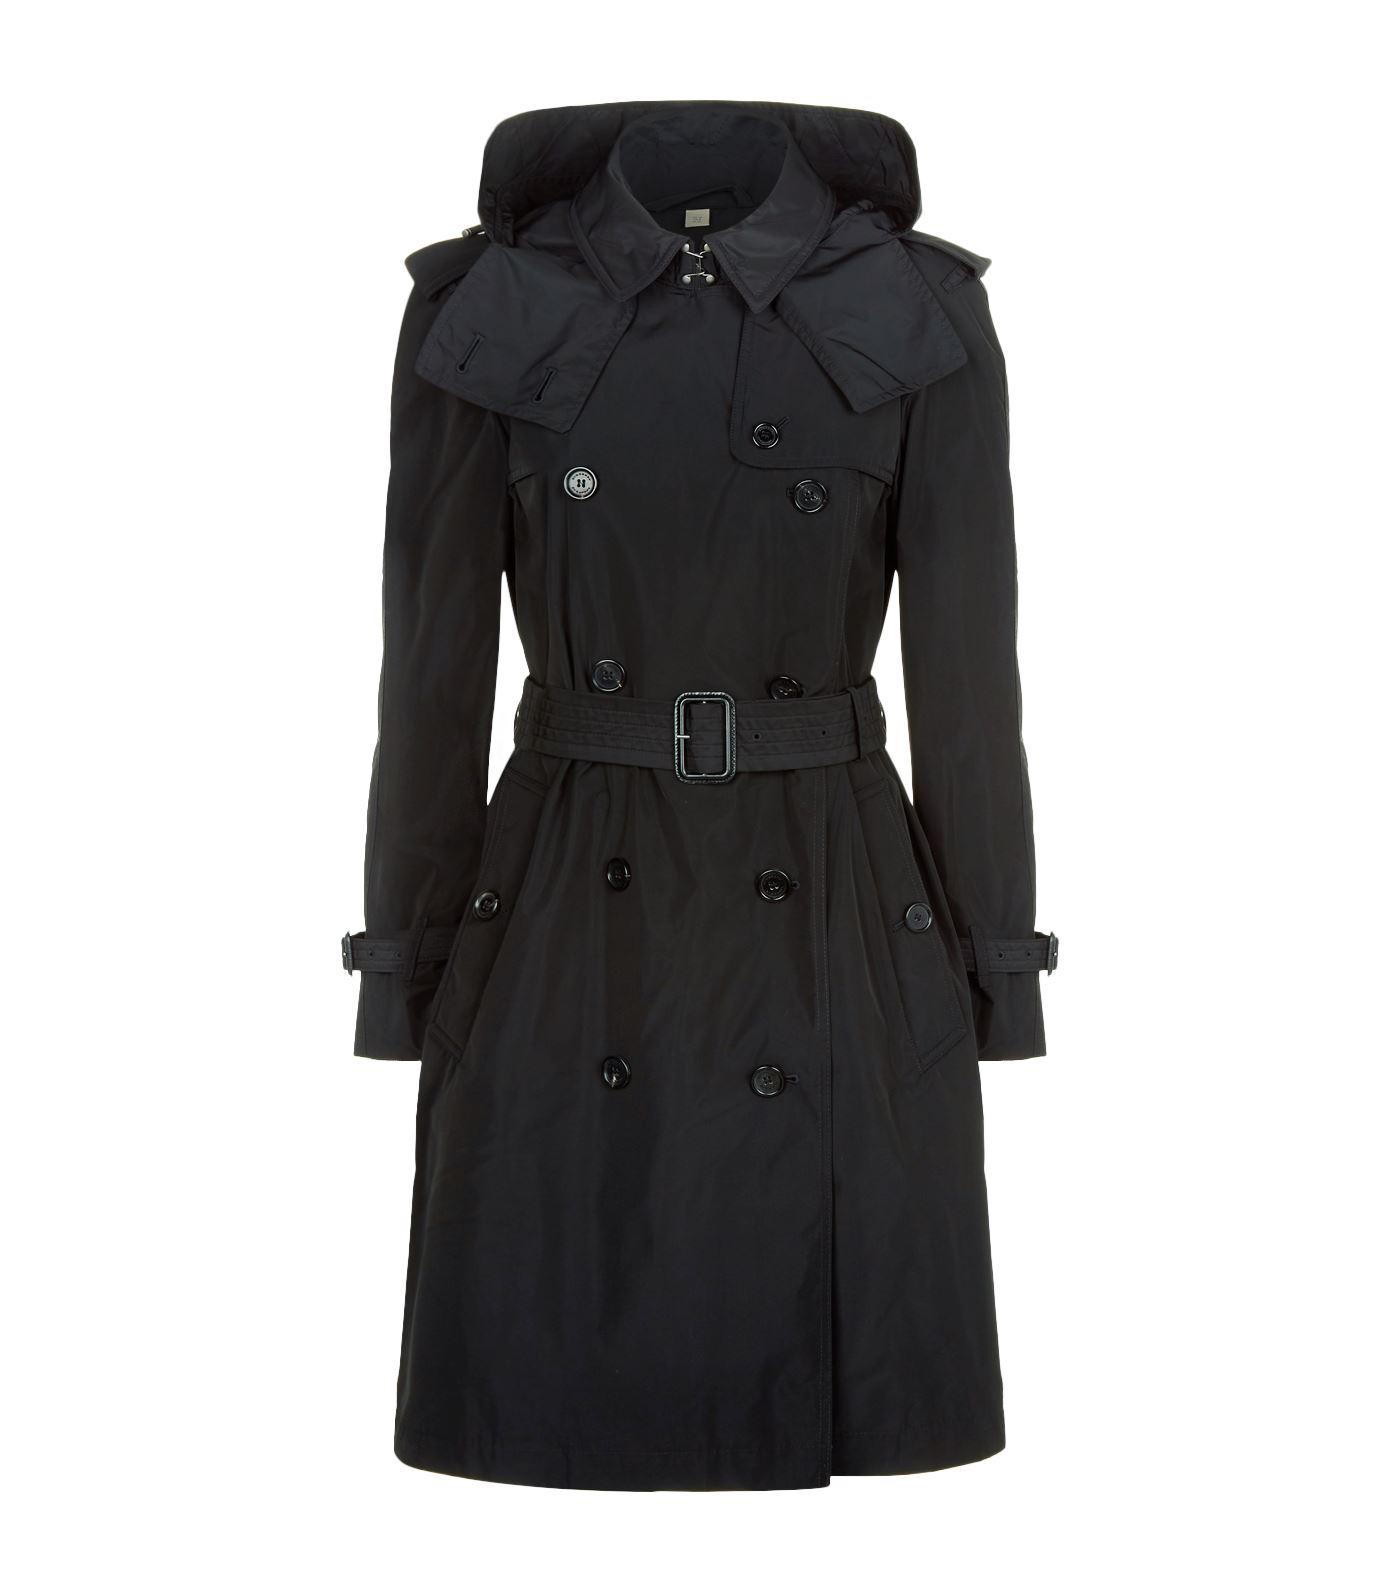 Burberry Amberford Hooded Trench Coat in Black - Lyst